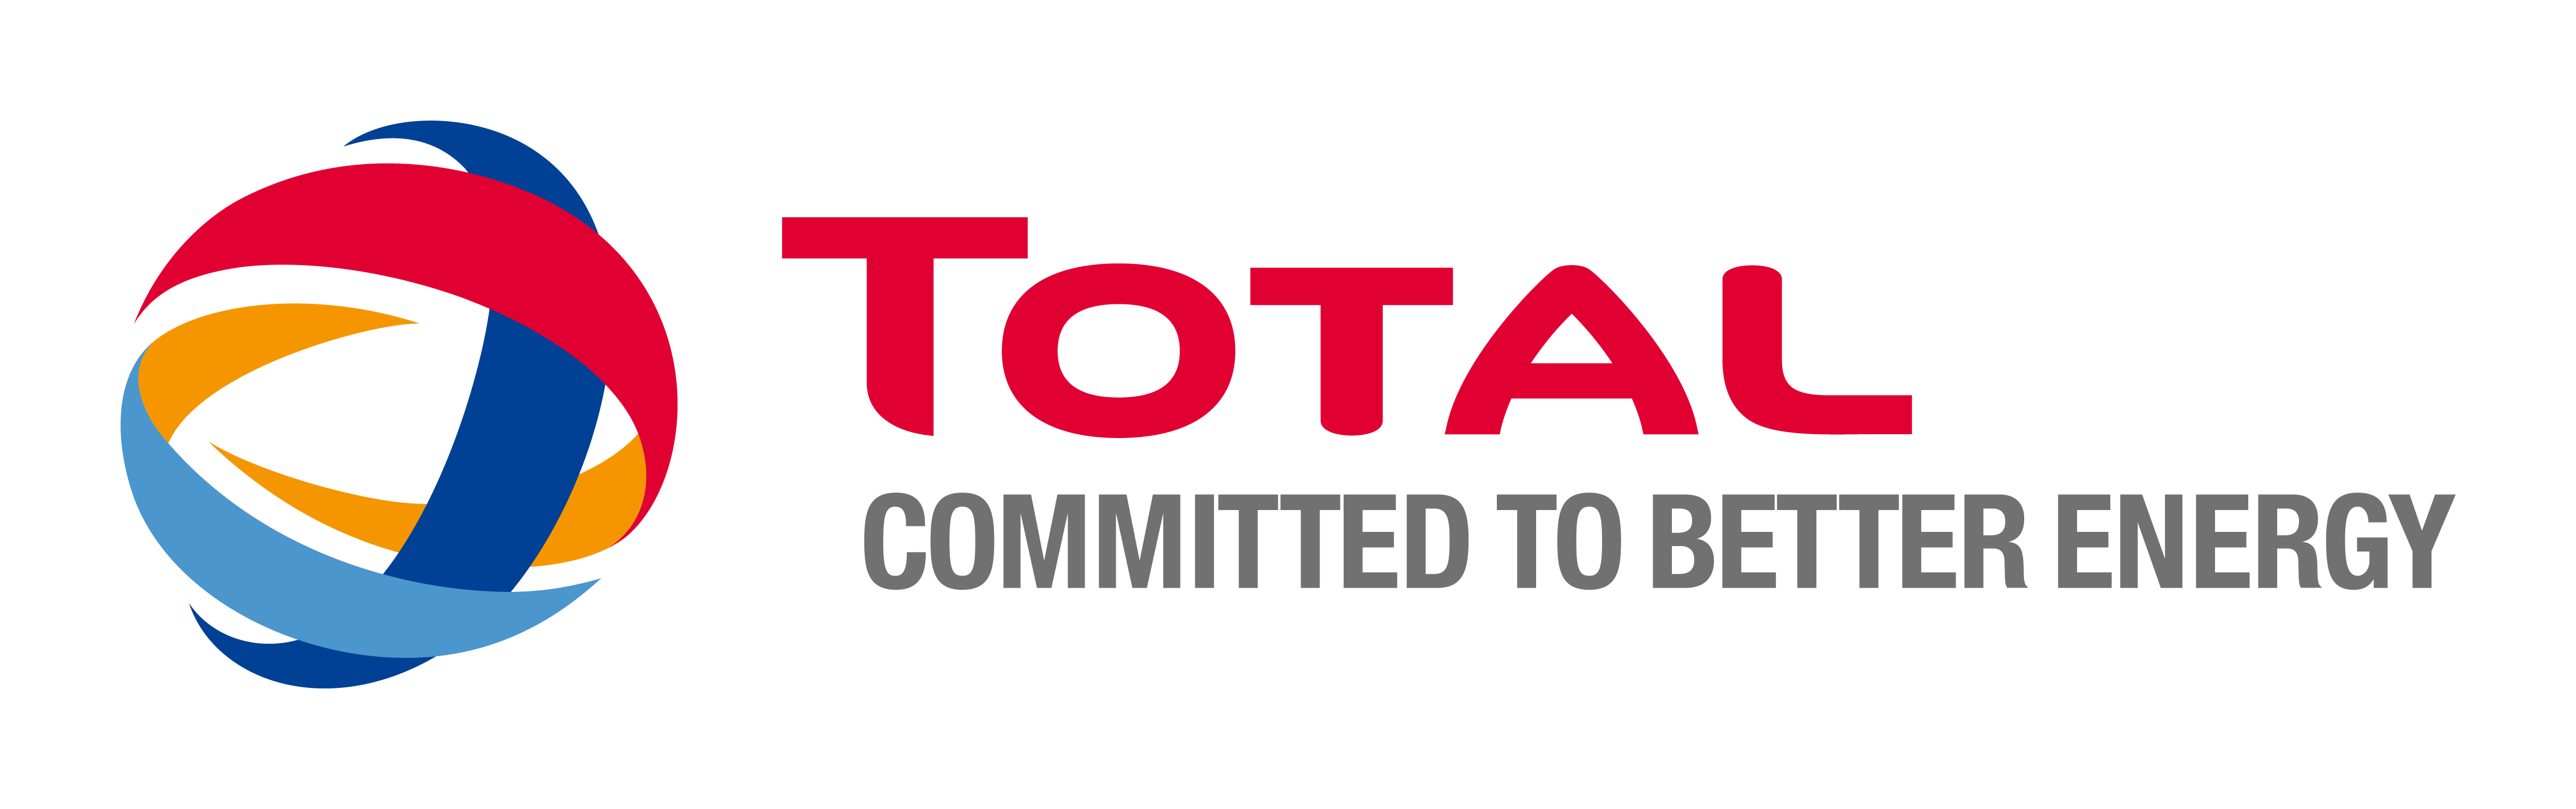 total committed to better energy logo #7901